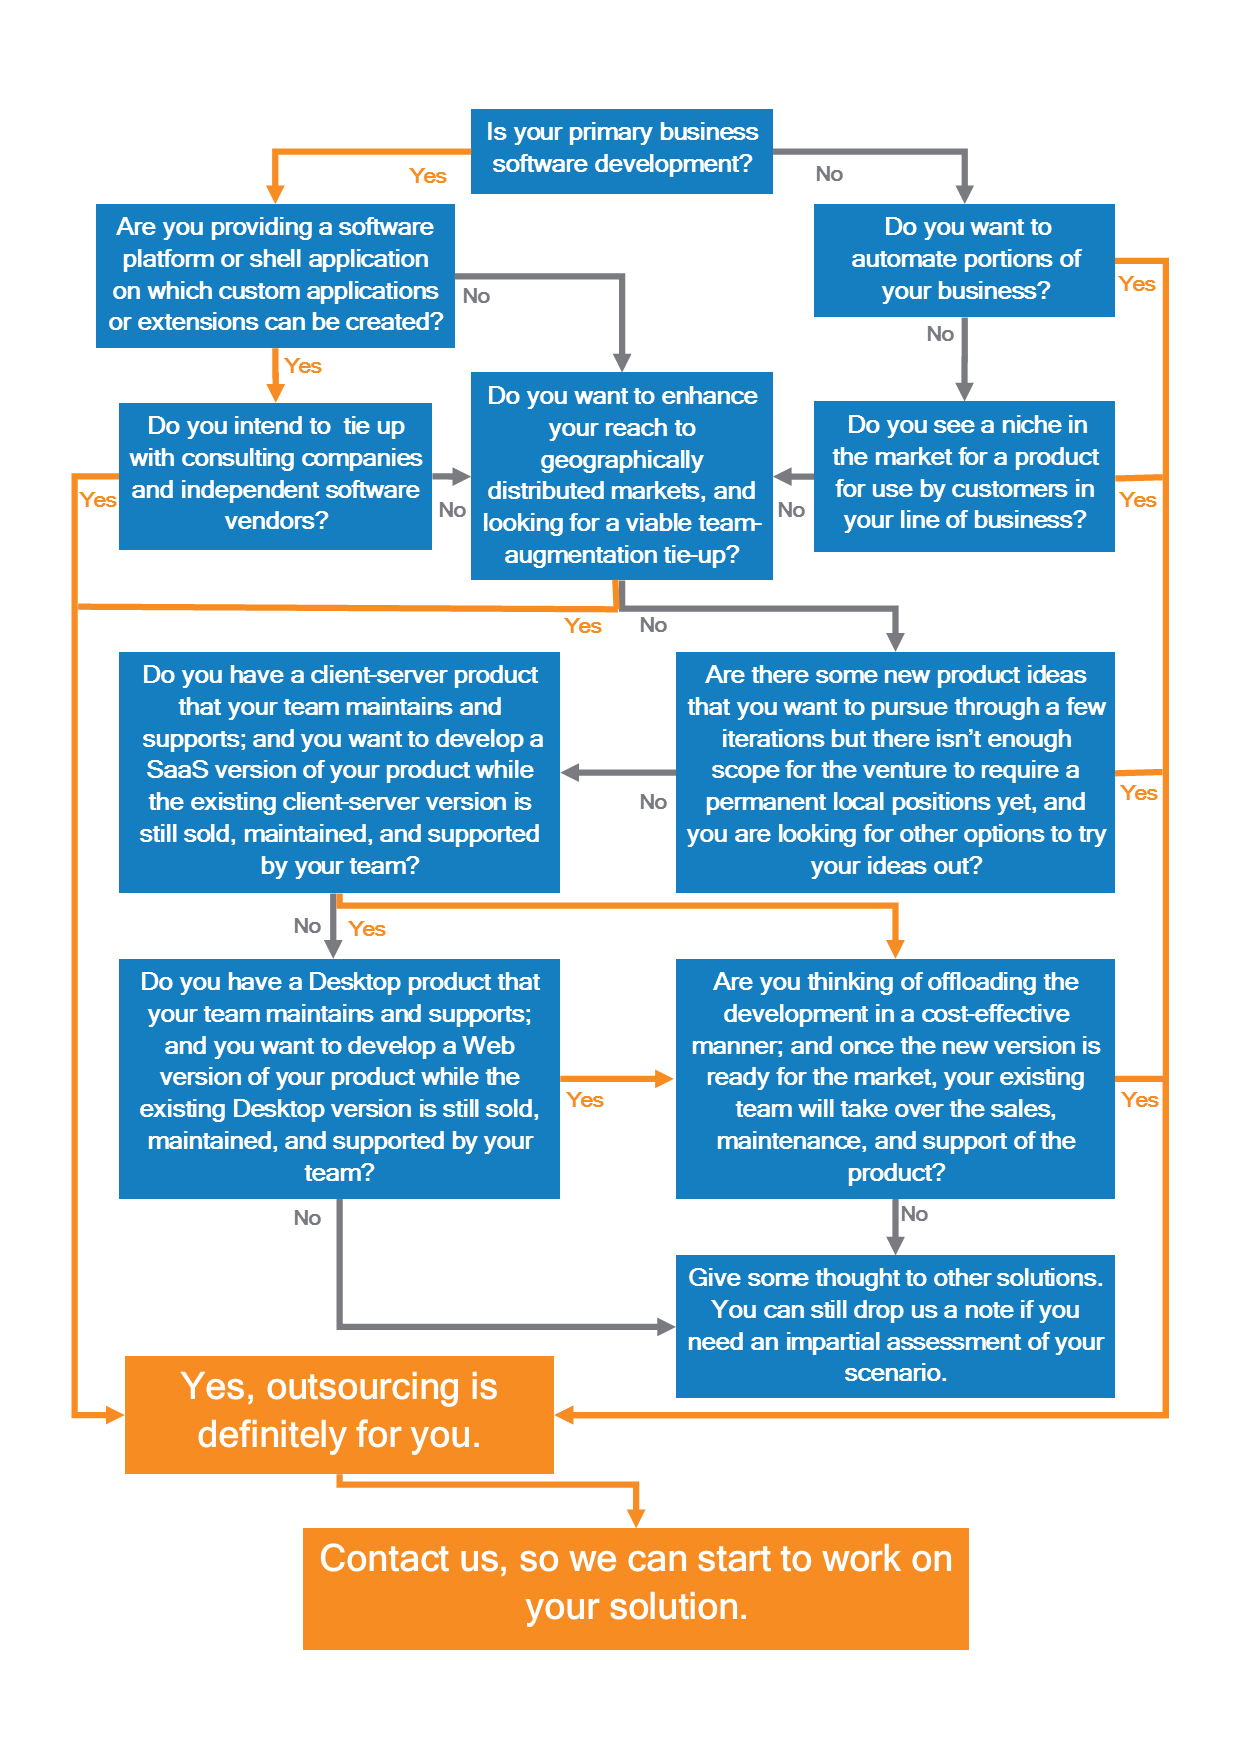 Visual guide to find out if outsourcing is for you.